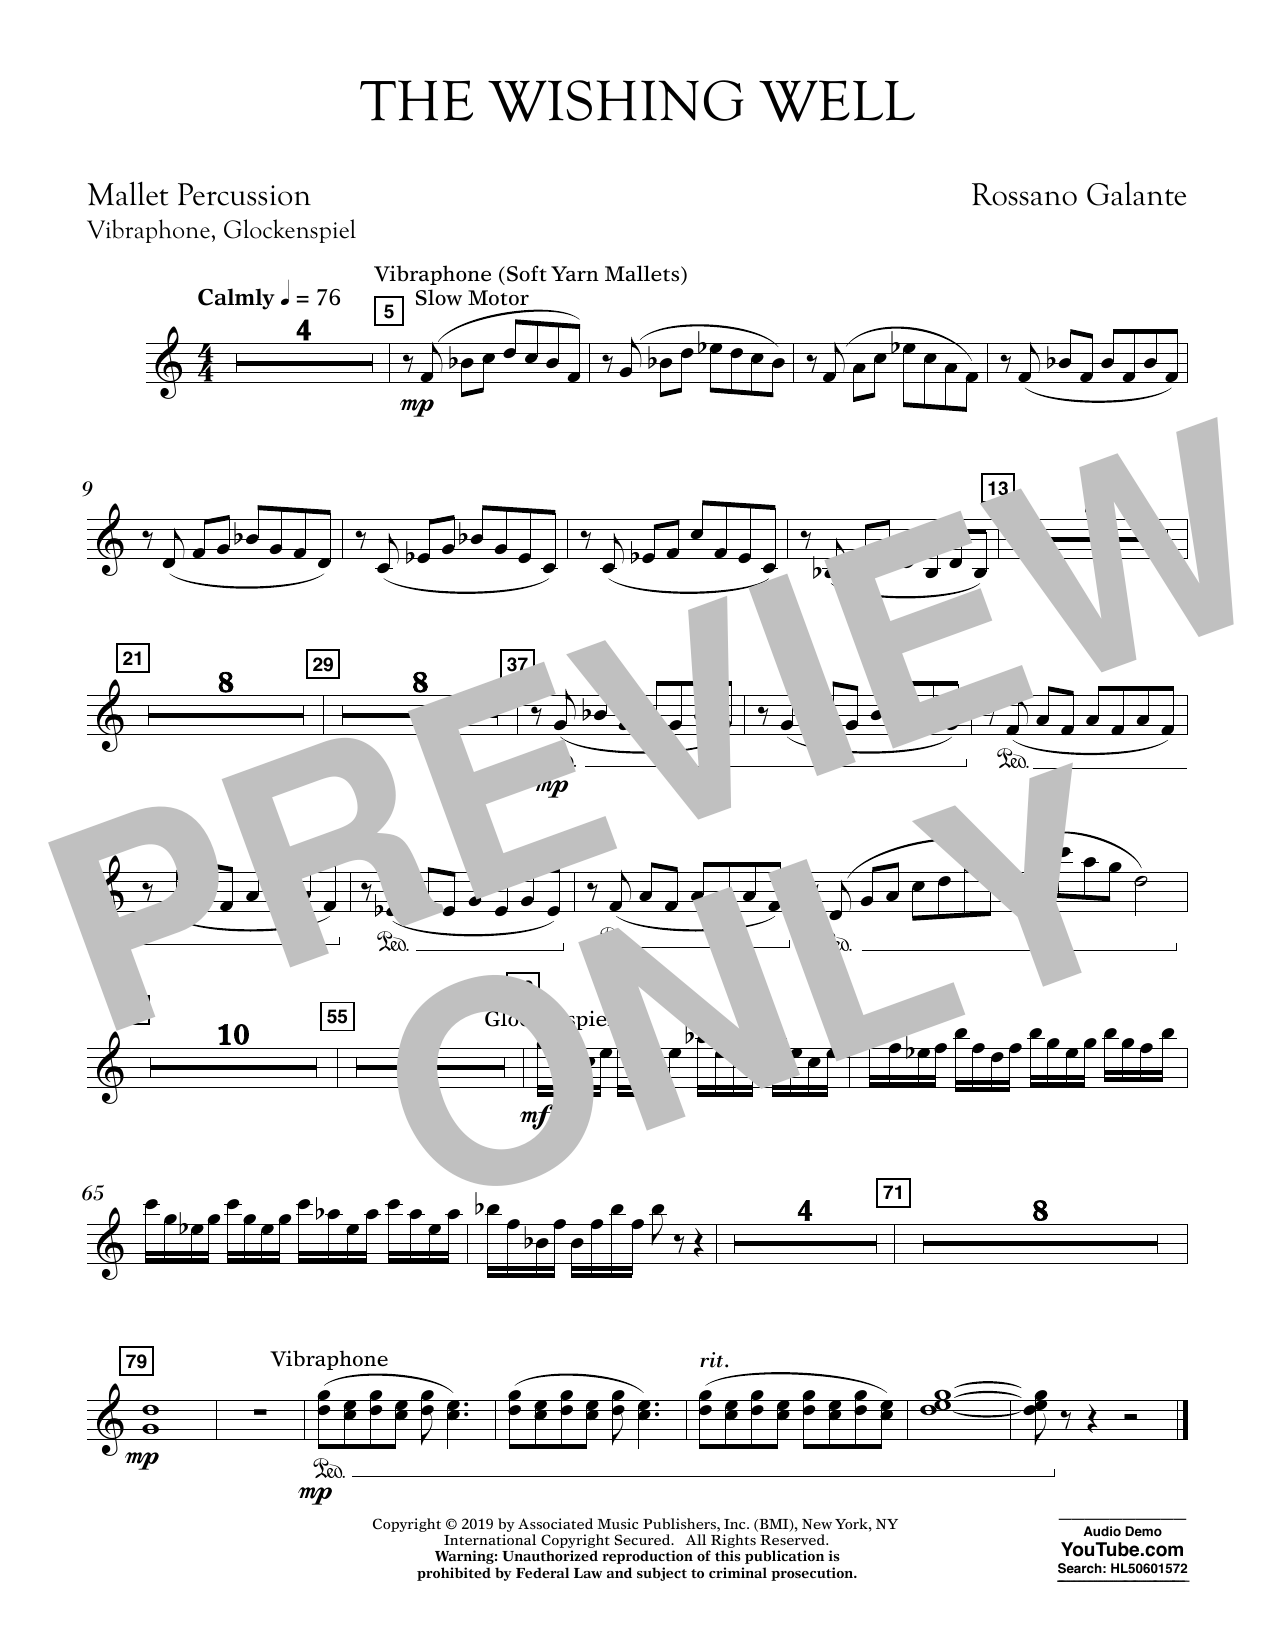 Rossano Galante The Wishing Well - Mallet Percussion sheet music preview music notes and score for Concert Band including 1 page(s)